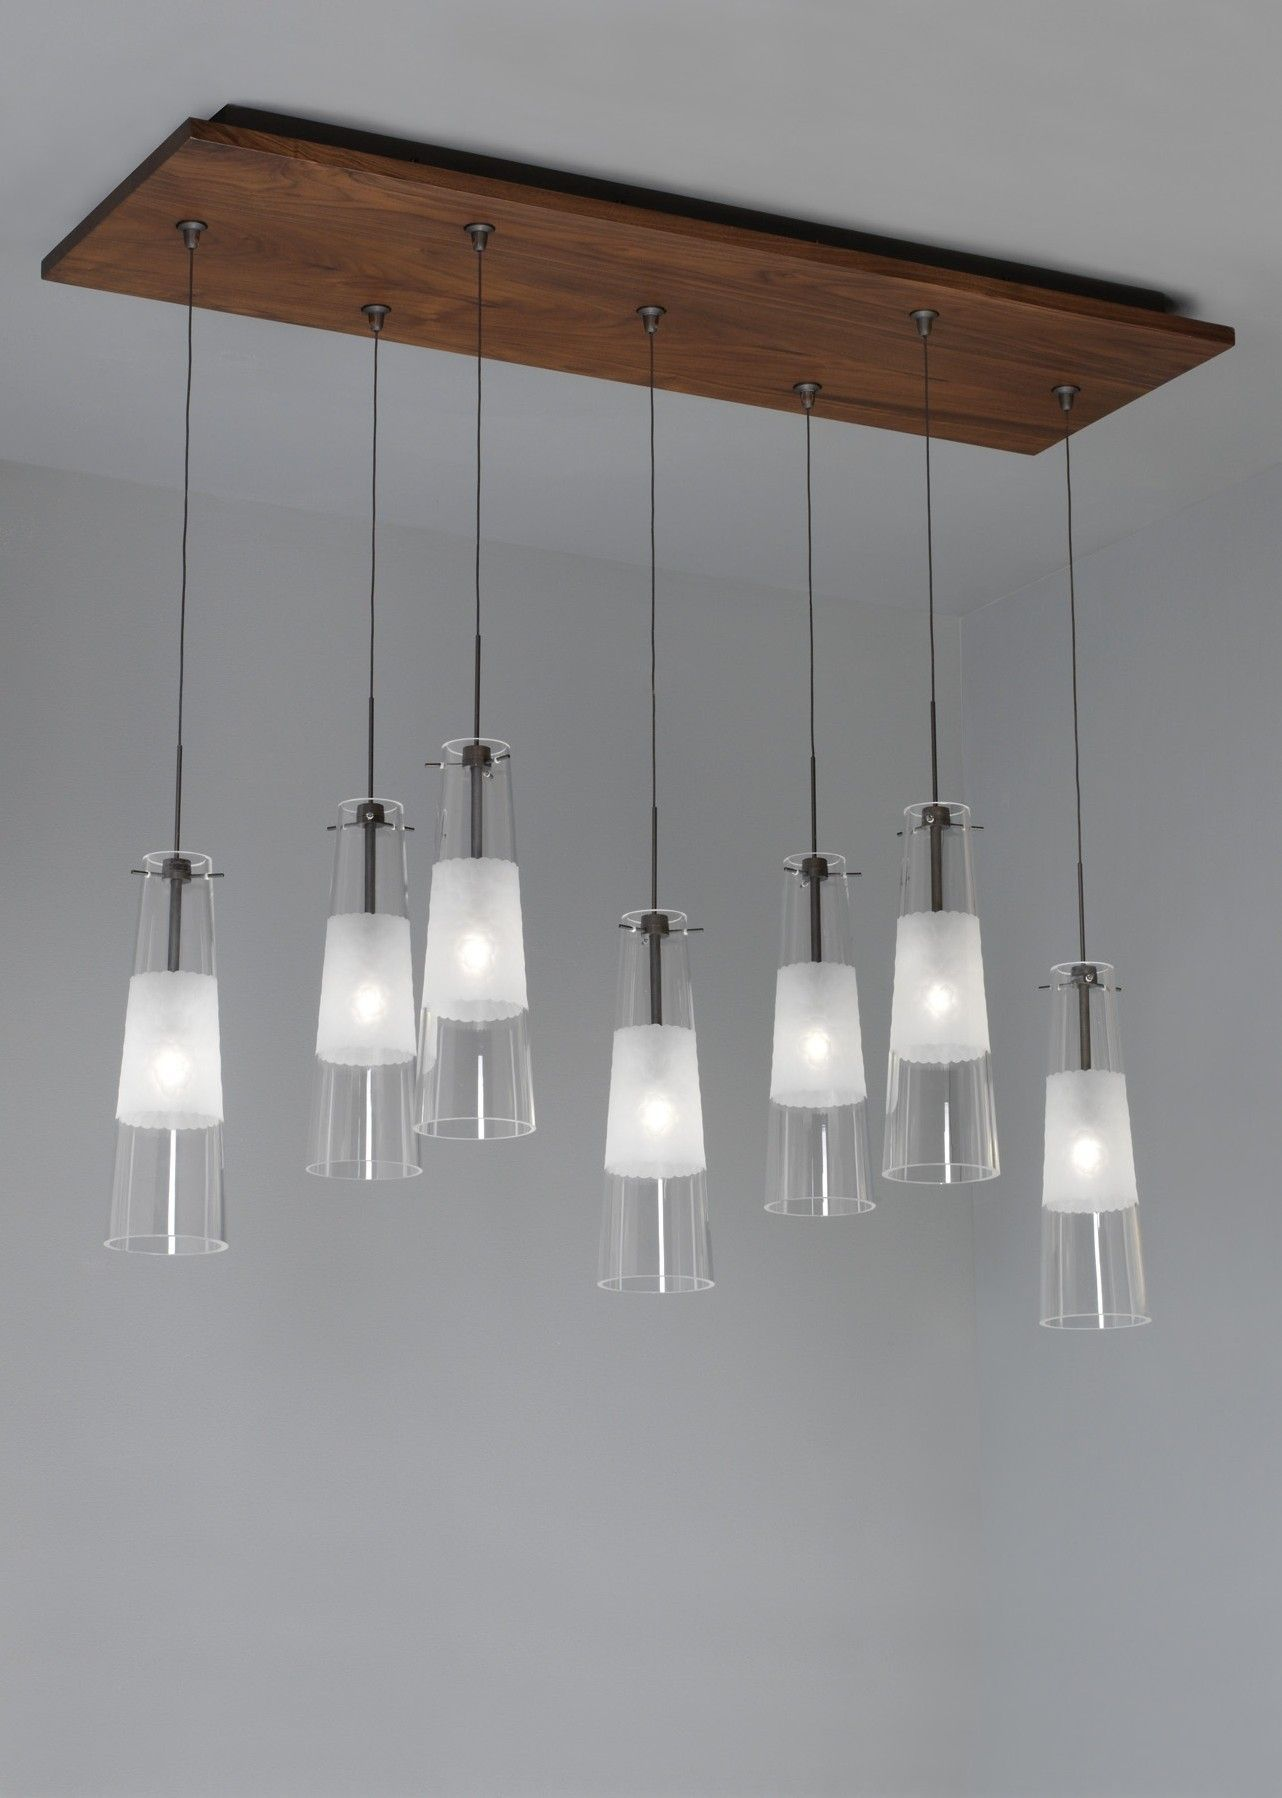 Features wood rectangle canopy compatible with all low voltage compatible with all low voltage fusion jack pendants and swivel heads note minimum 12 clearance between canopy and top of pendant or head is required aloadofball Choice Image